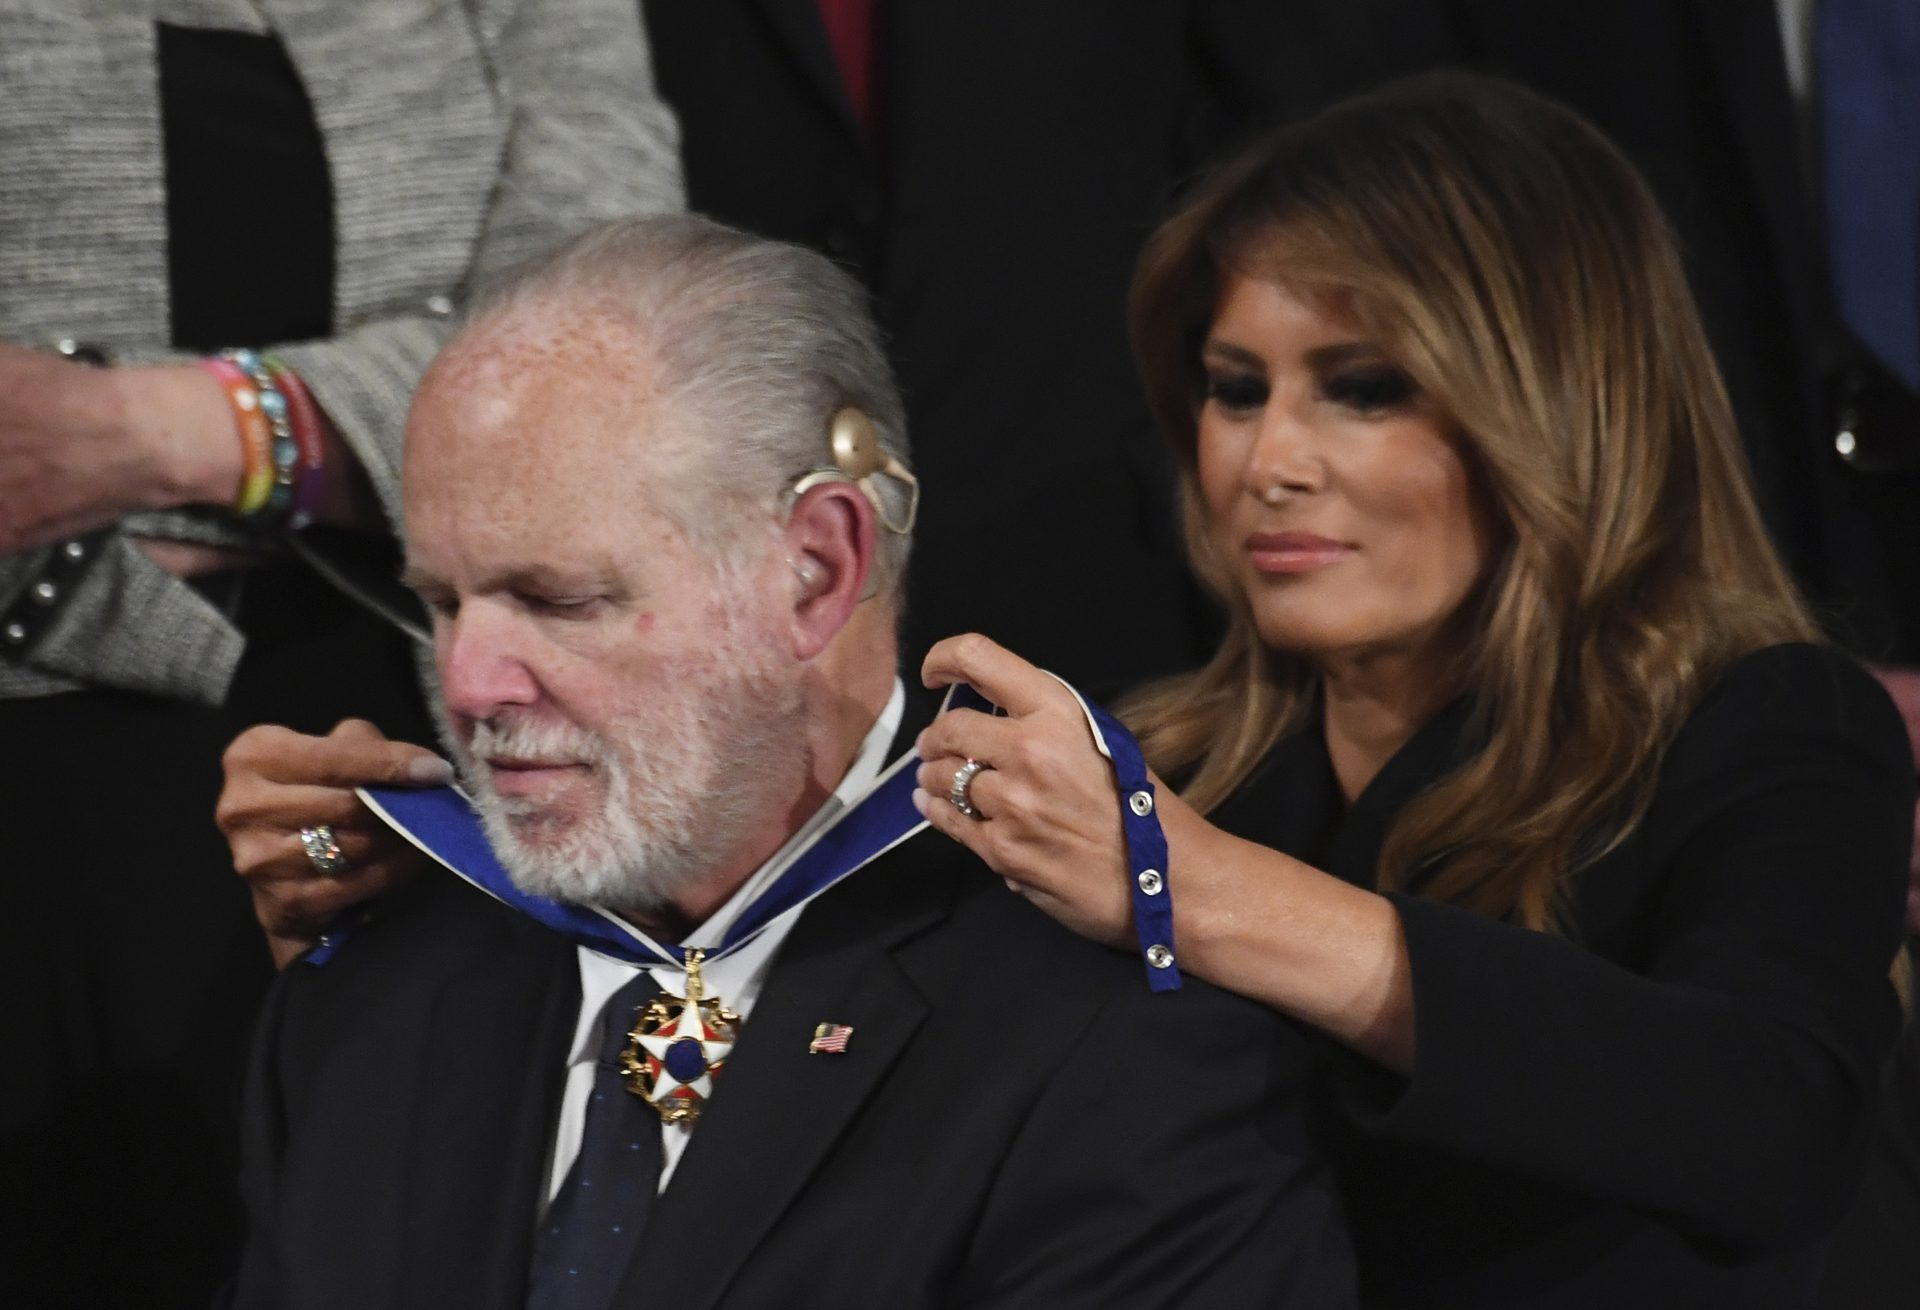 Mandatory Credit: Photo by PAT BENIC/UPI/Shutterstock (11665924n)First Lady Melania Trump presents conservative commentator Rush Limbaugh with the Presidential Medal of Freedom as President Donald Trump delivers his State of the Union address to a joint session of Congress in the House Chamber of the U.